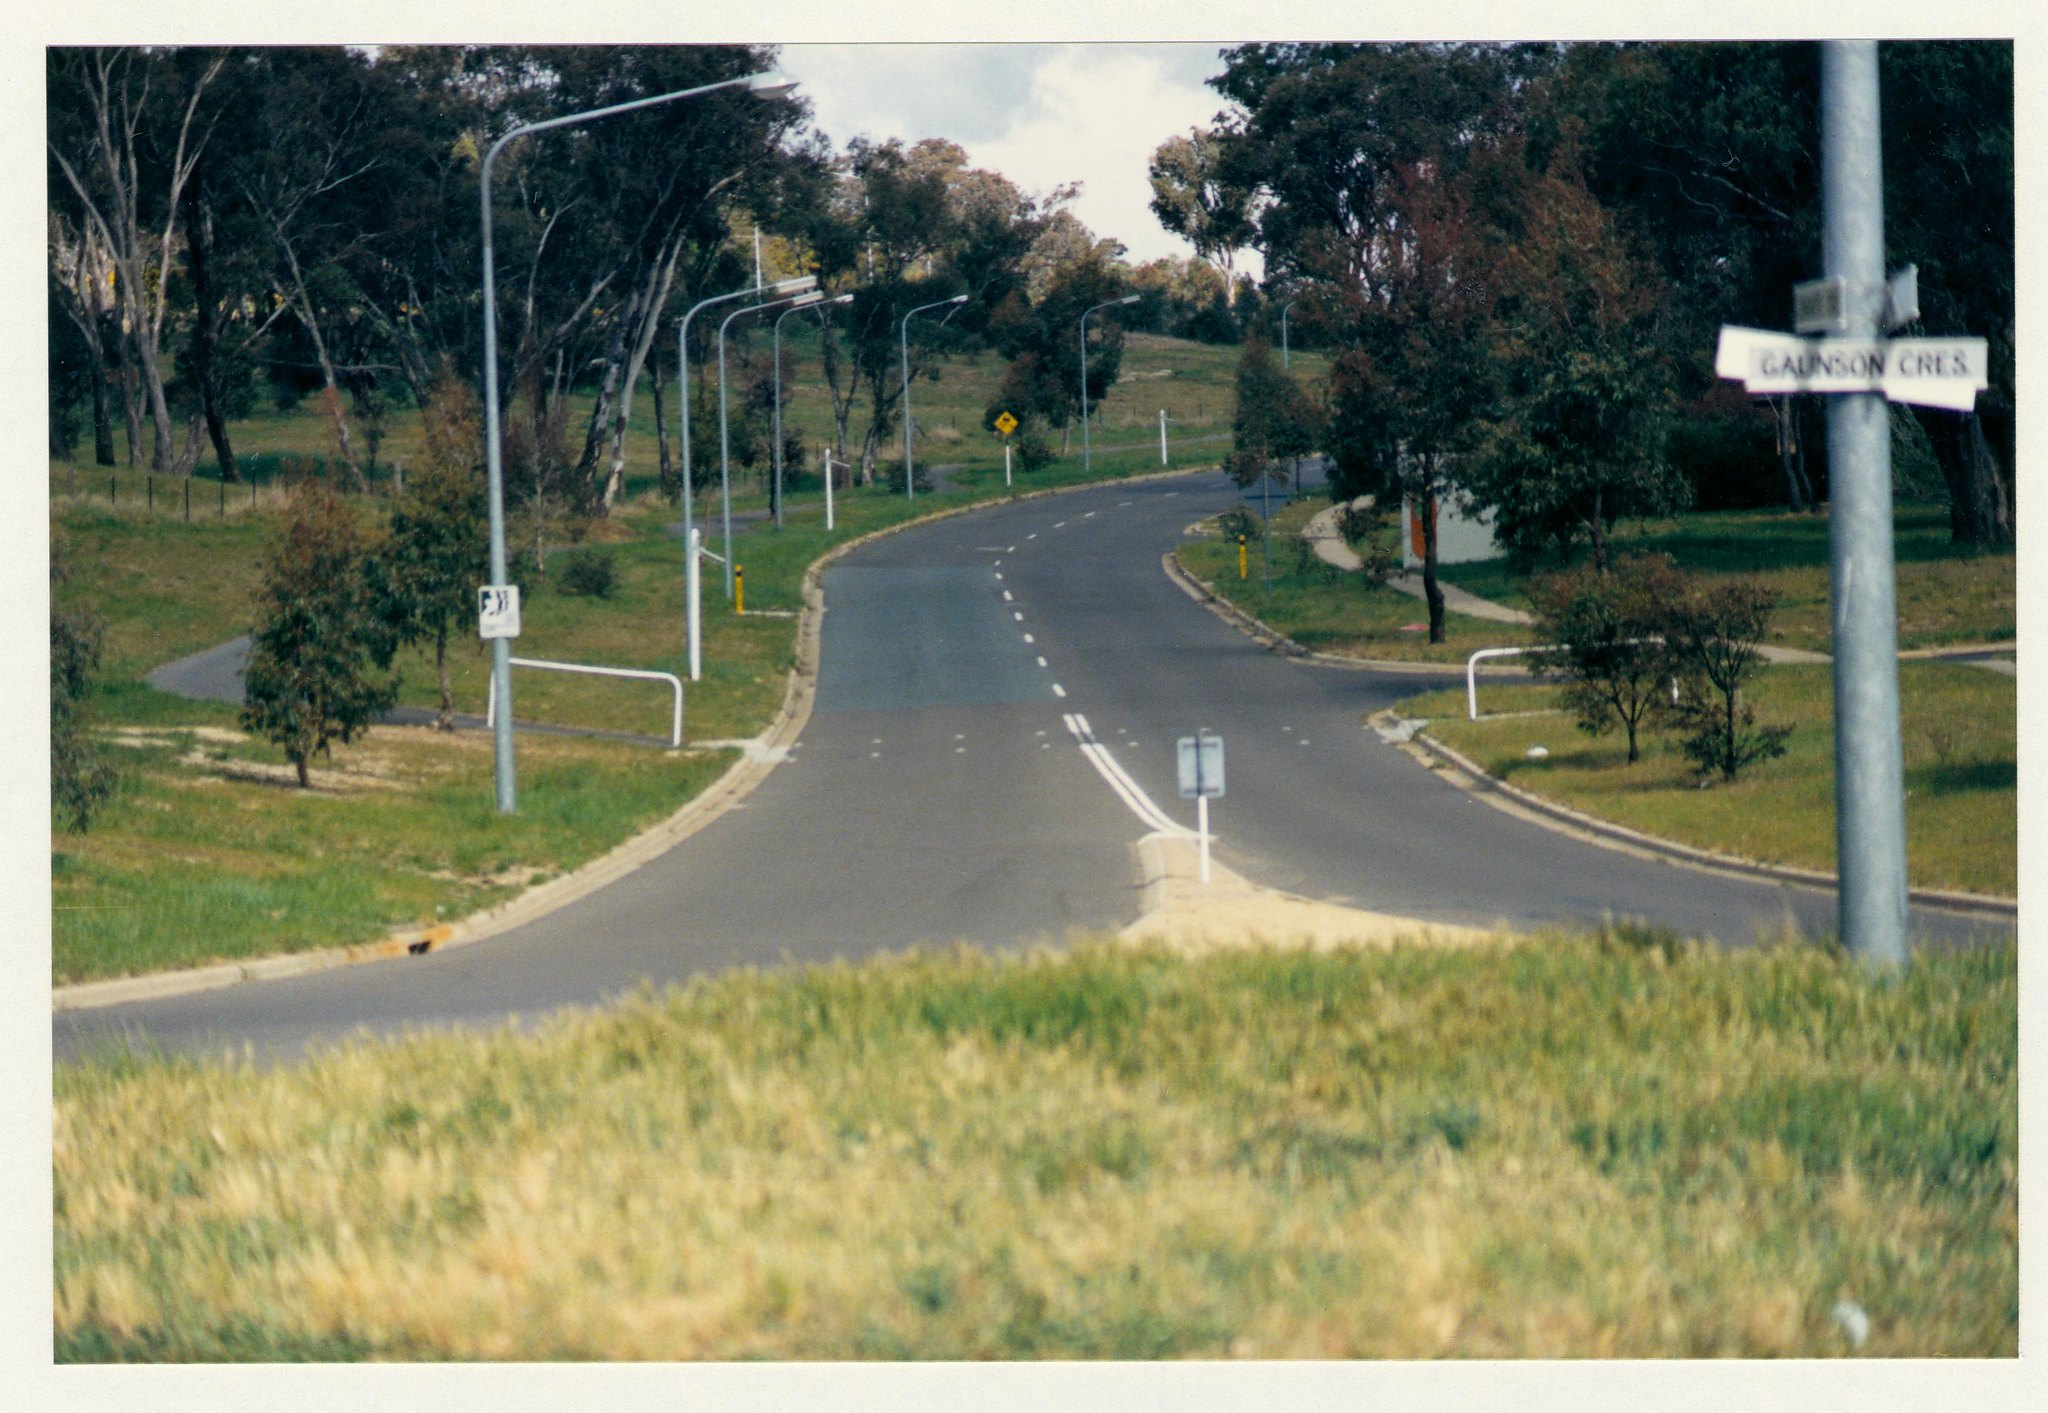 Pathway crossing Longmore Crescent at Gaunson Crescent. View from roadway centre. c1989